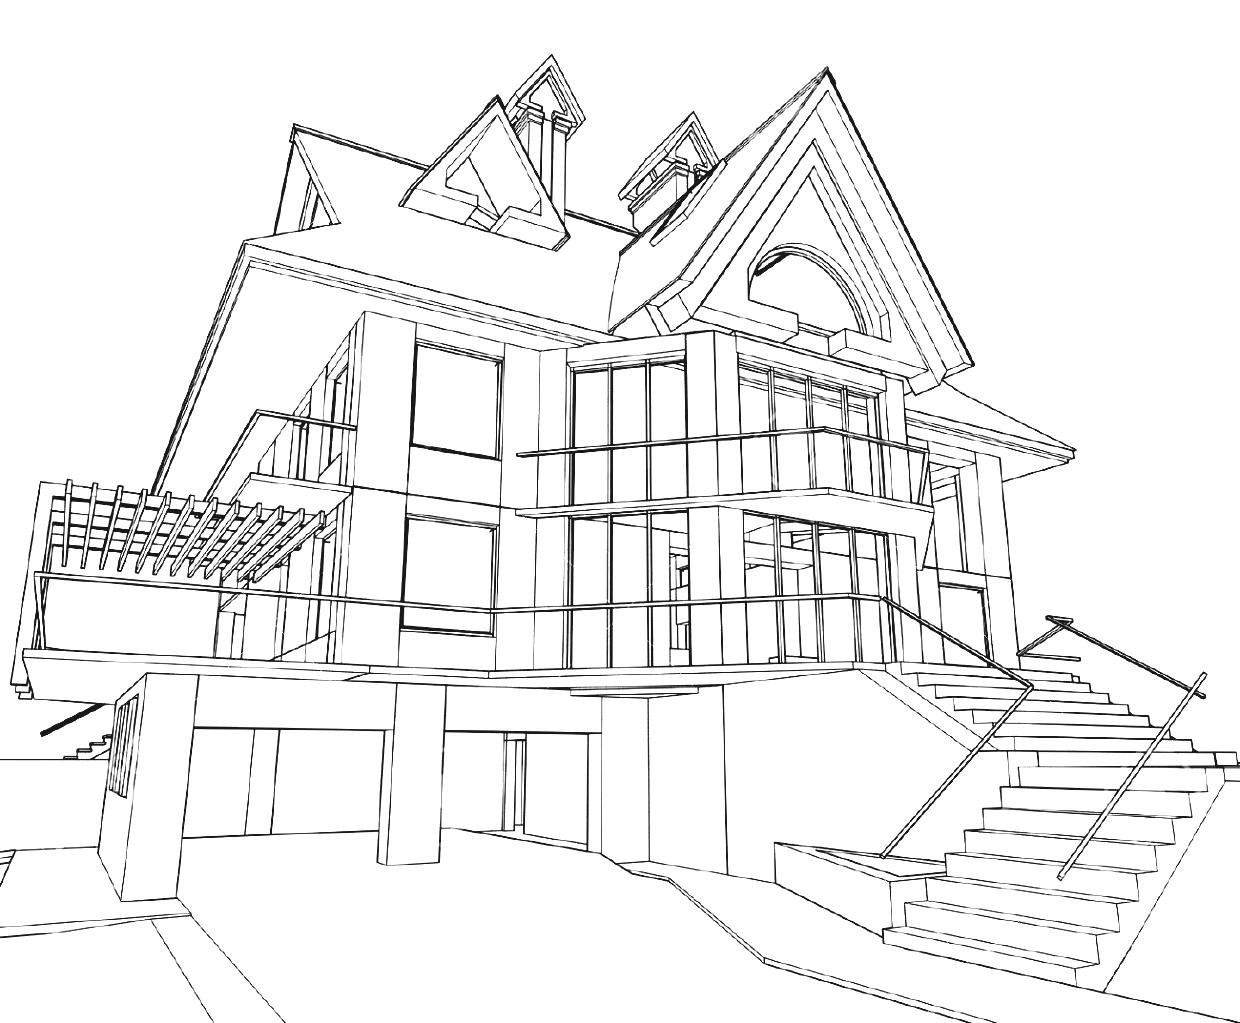 Architecture house drawing at free for for Architecture plan drawing